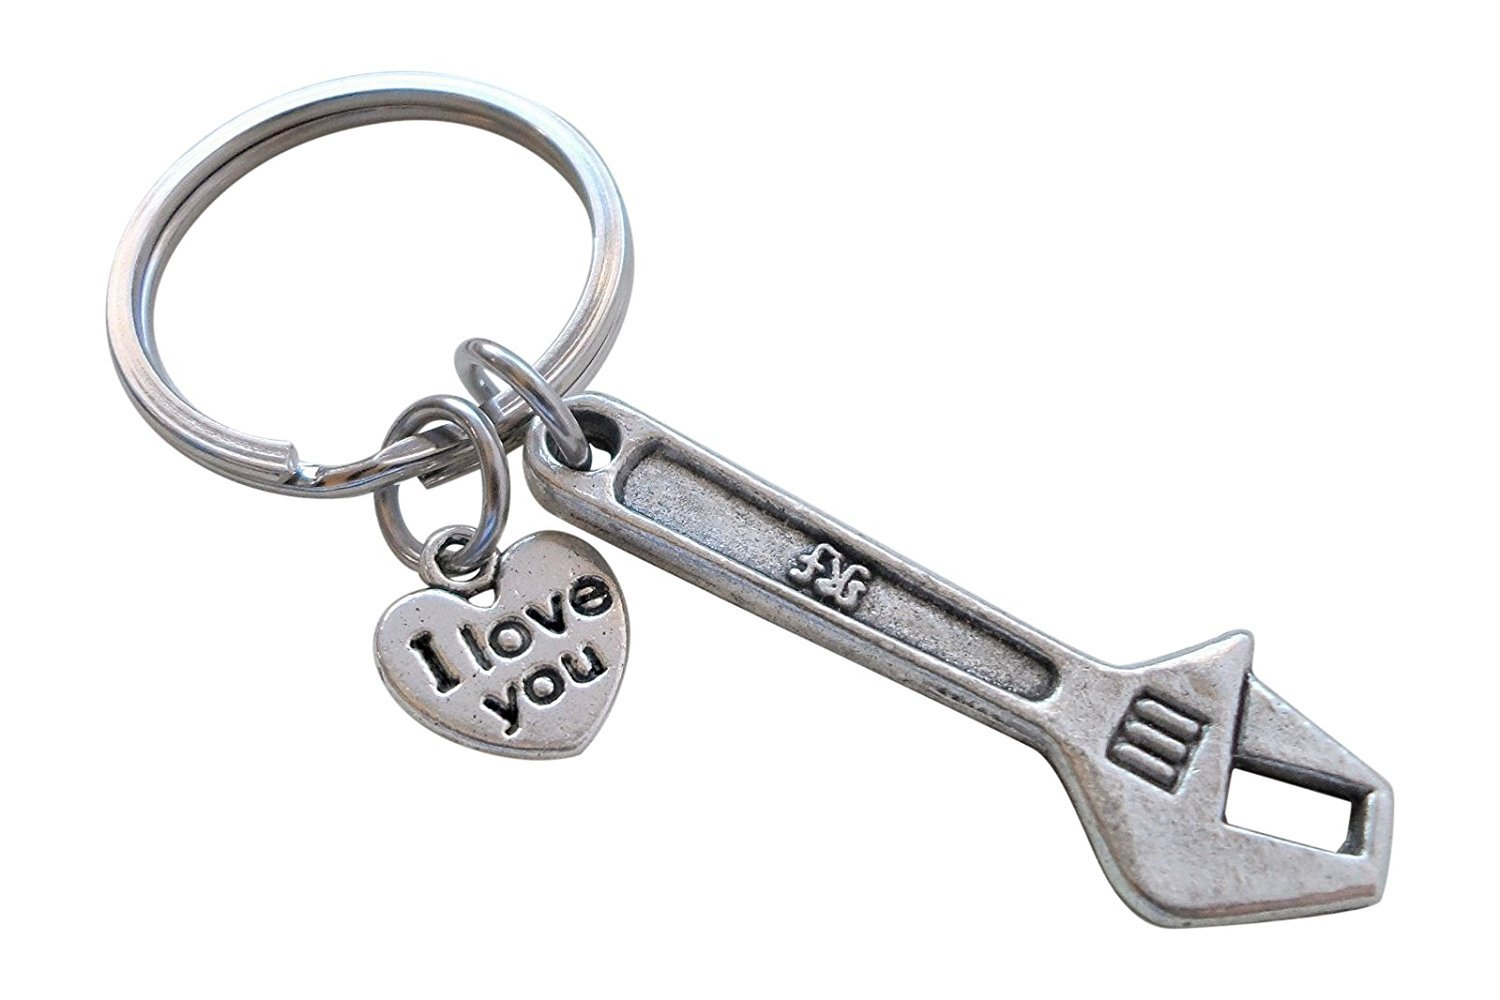 Wrench Keychain - My Dad Can Fix Anything; Fathers Gift Keychain JewelryEveryday 32914000342